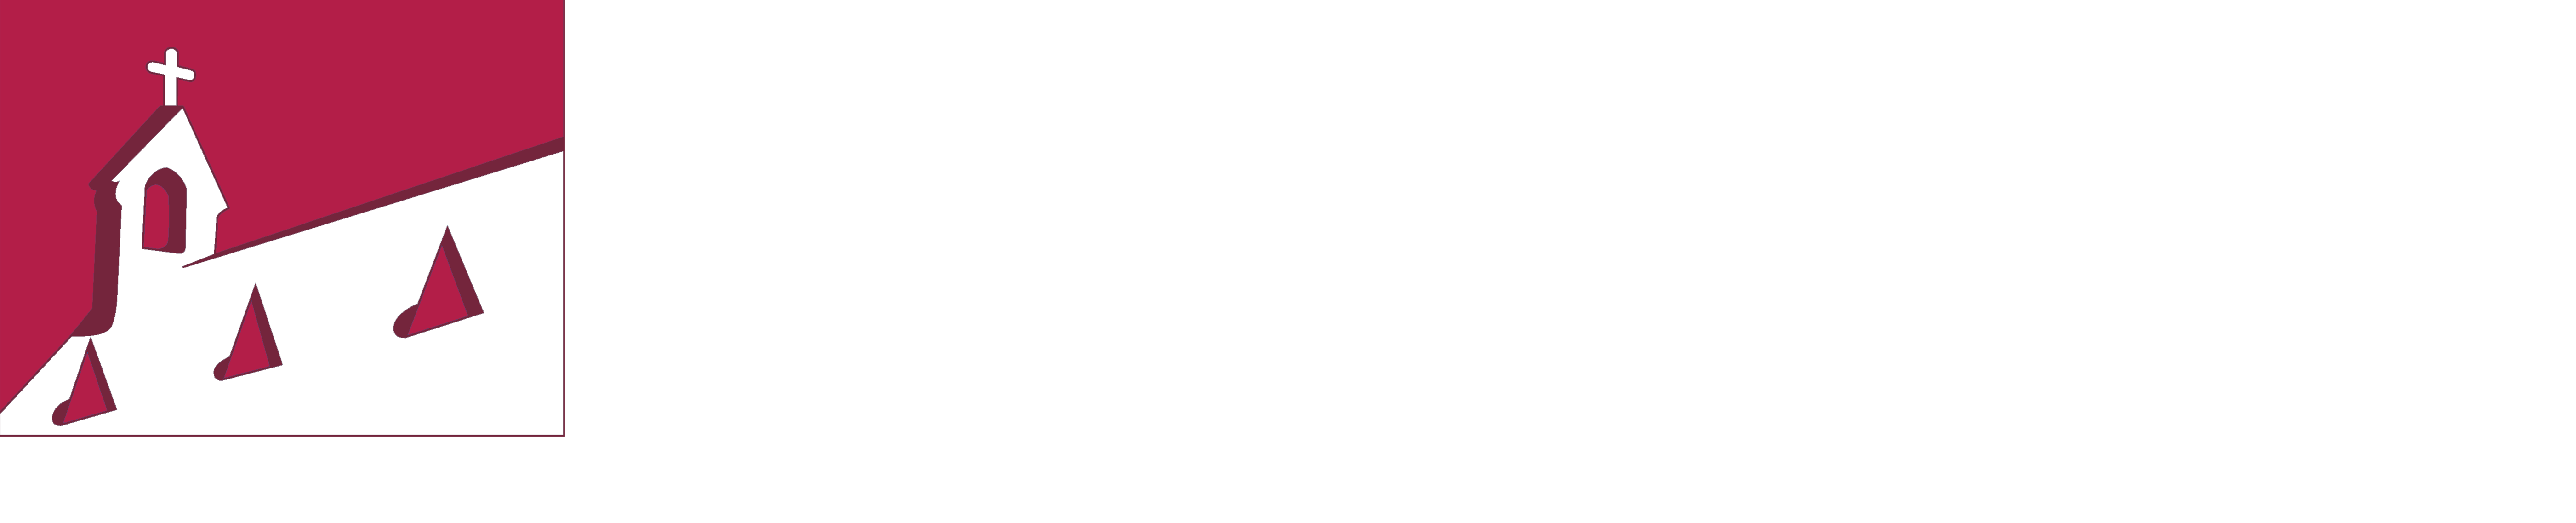 Sydney Christian Fellowship